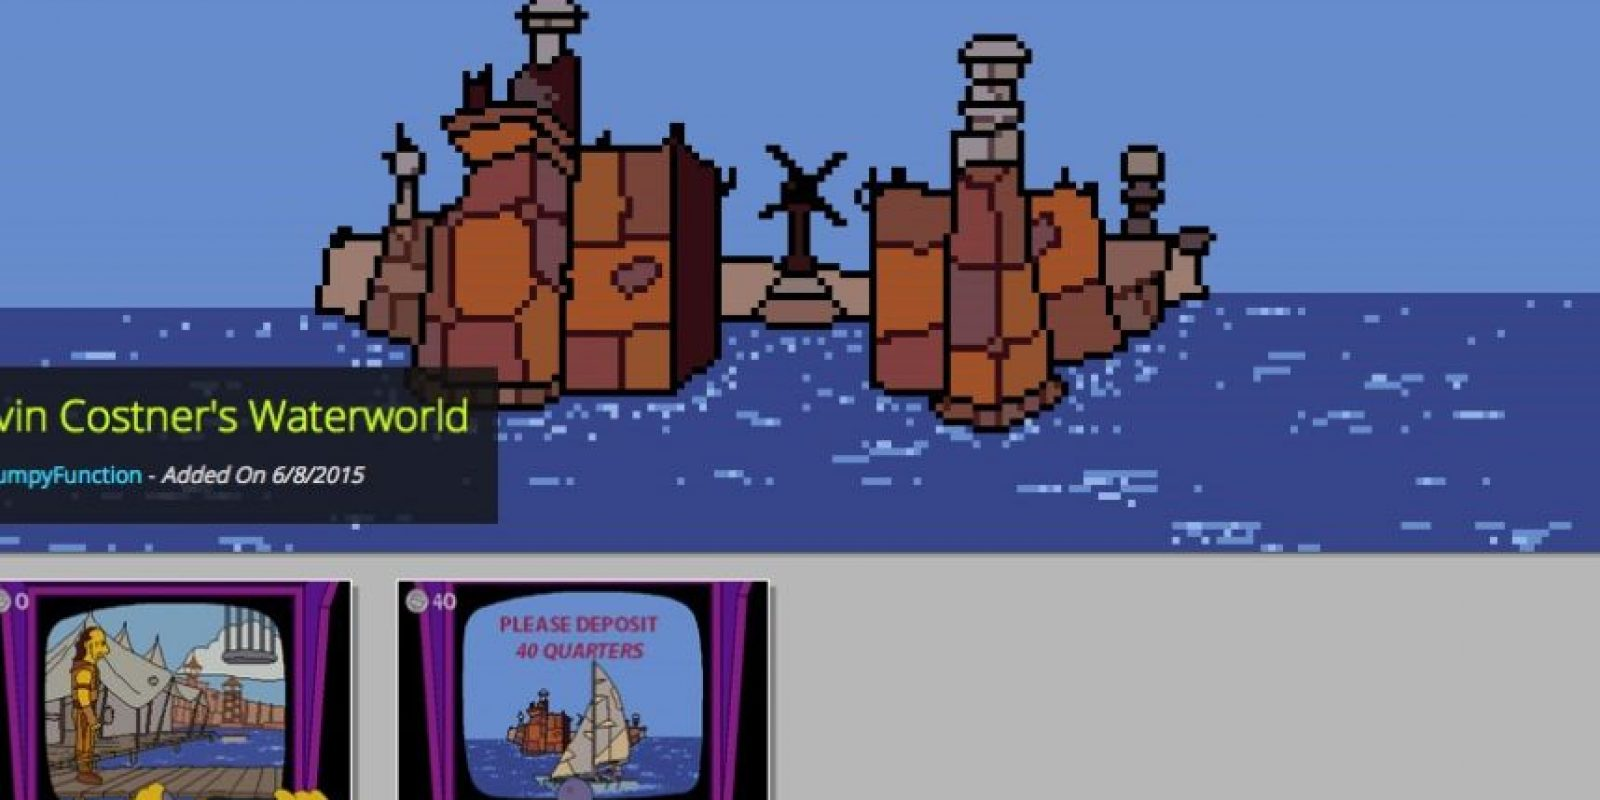 Kevin Costner's Waterworld Foto: GameJolt